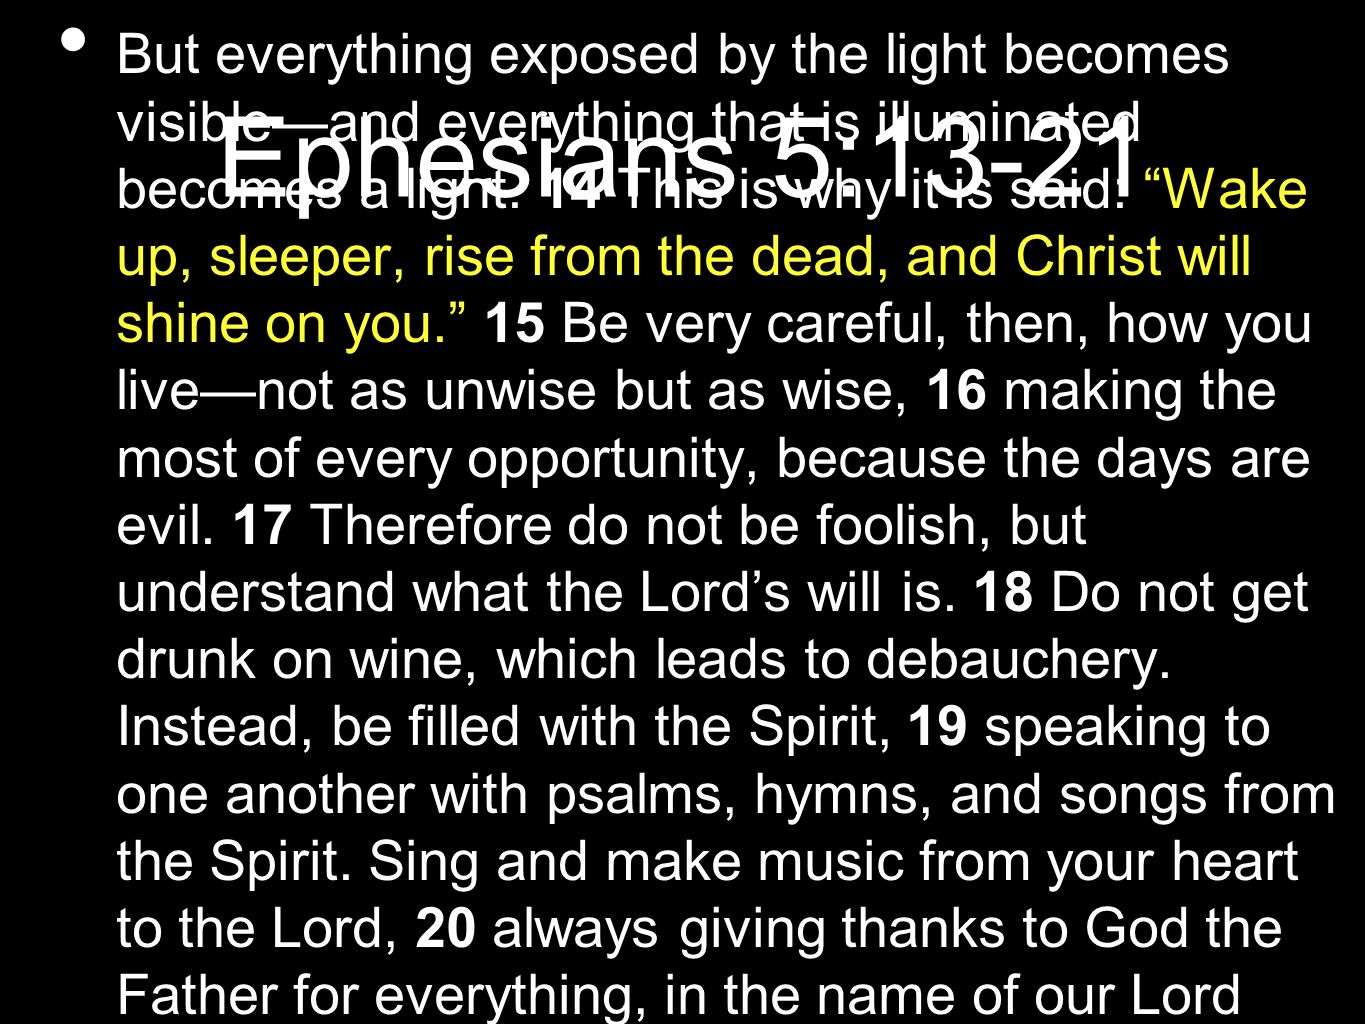 Ephesians 5:13-21 But everything exposed by the light becomes visibleand everything that is illuminated becomes a light.